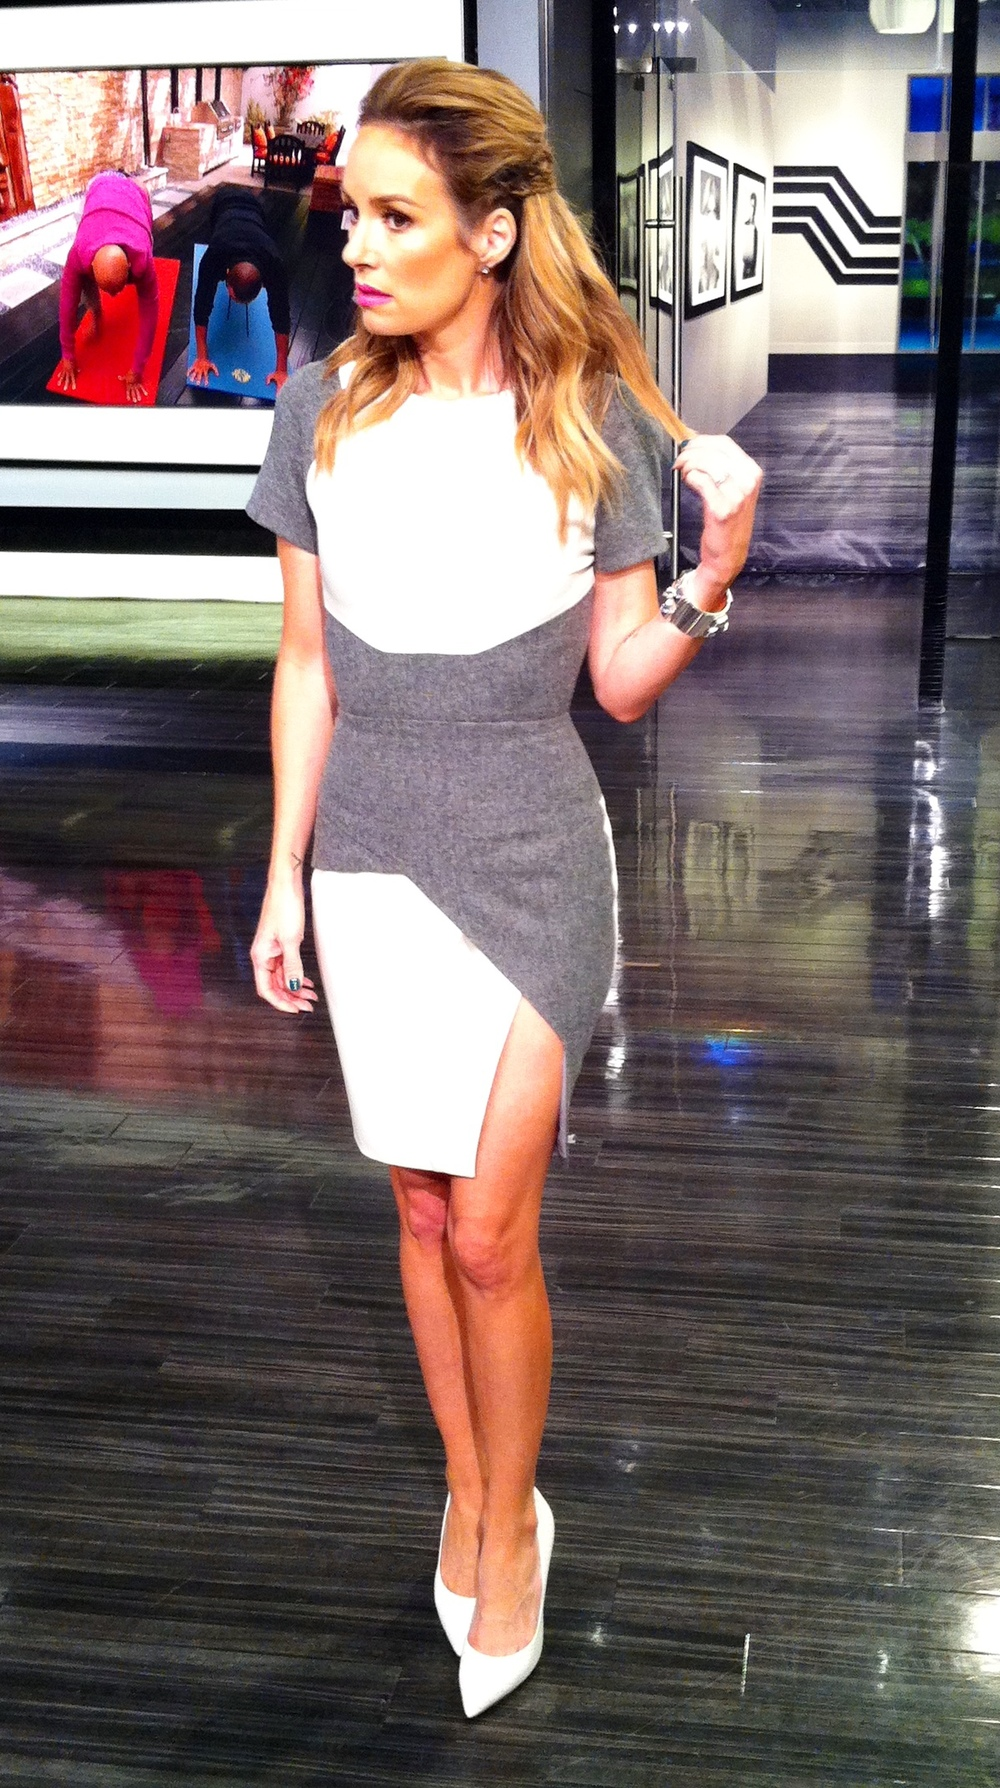 CATT SADLER CATTWALK DRESS